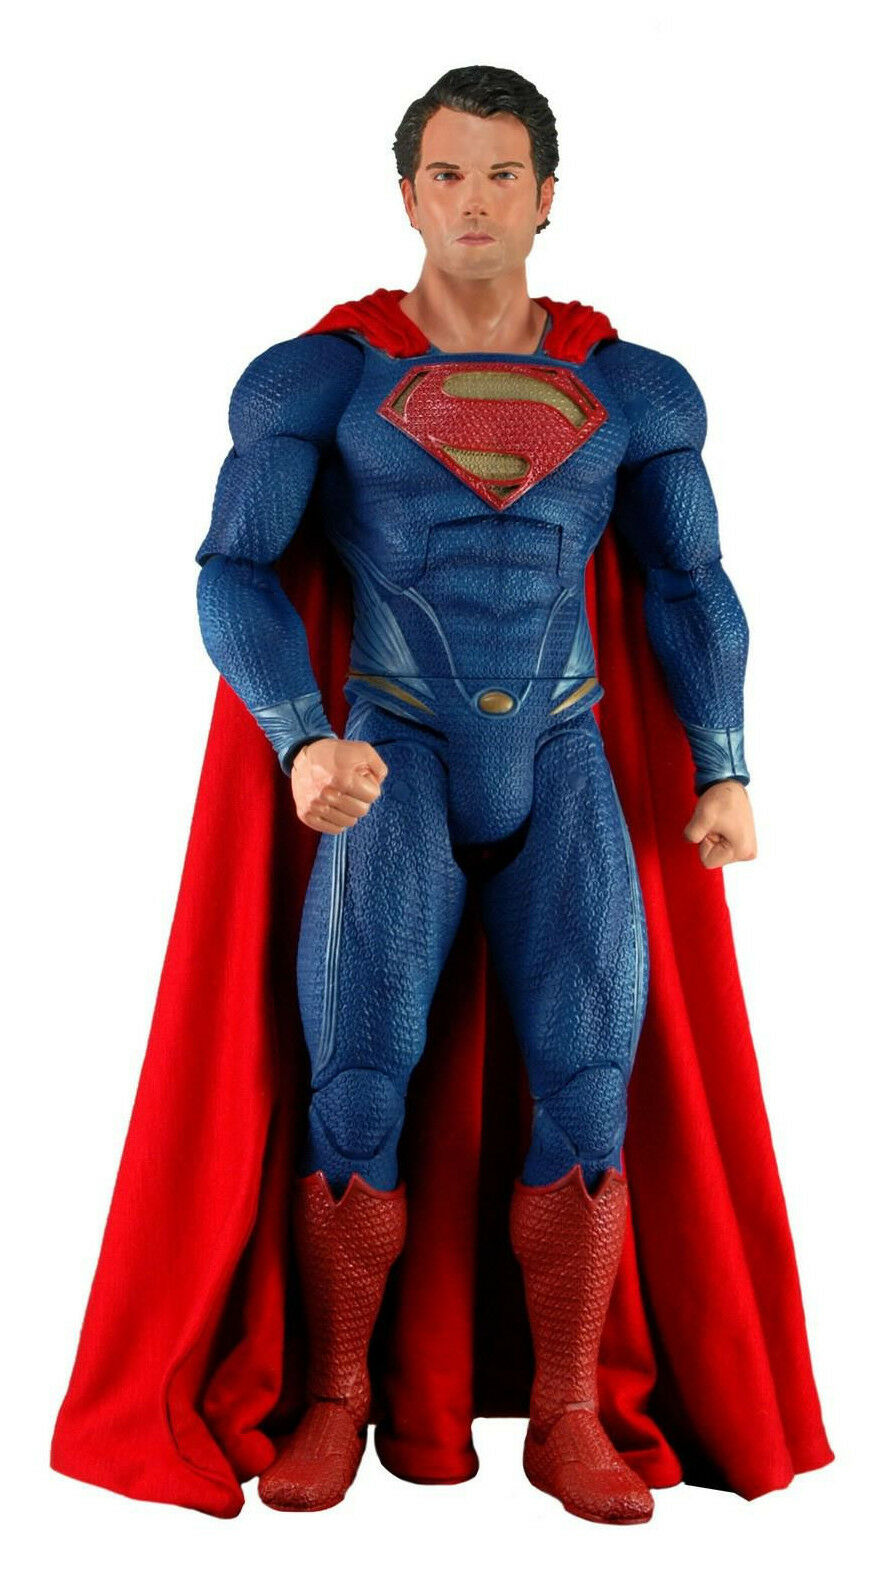 NECA Man of Steel Collection__SUPERMAN 1:4 Scale action figure_18 inches_MIB_Nuovo